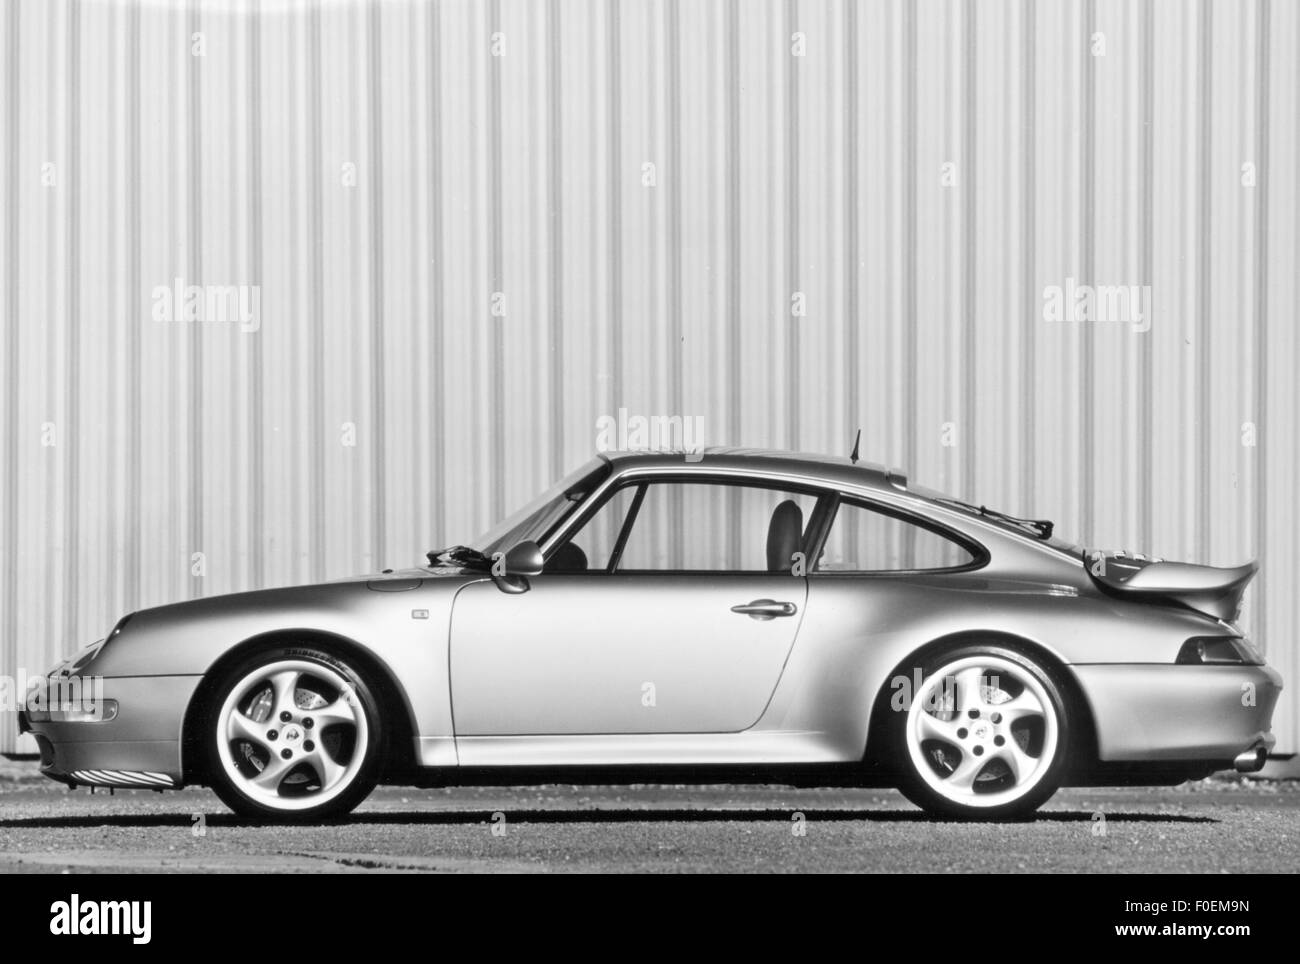 transport / transportation, cars, vehicle variants, Porsche 911 Turbo (Porsche 930), view from left, 1998, Additional - Stock Image